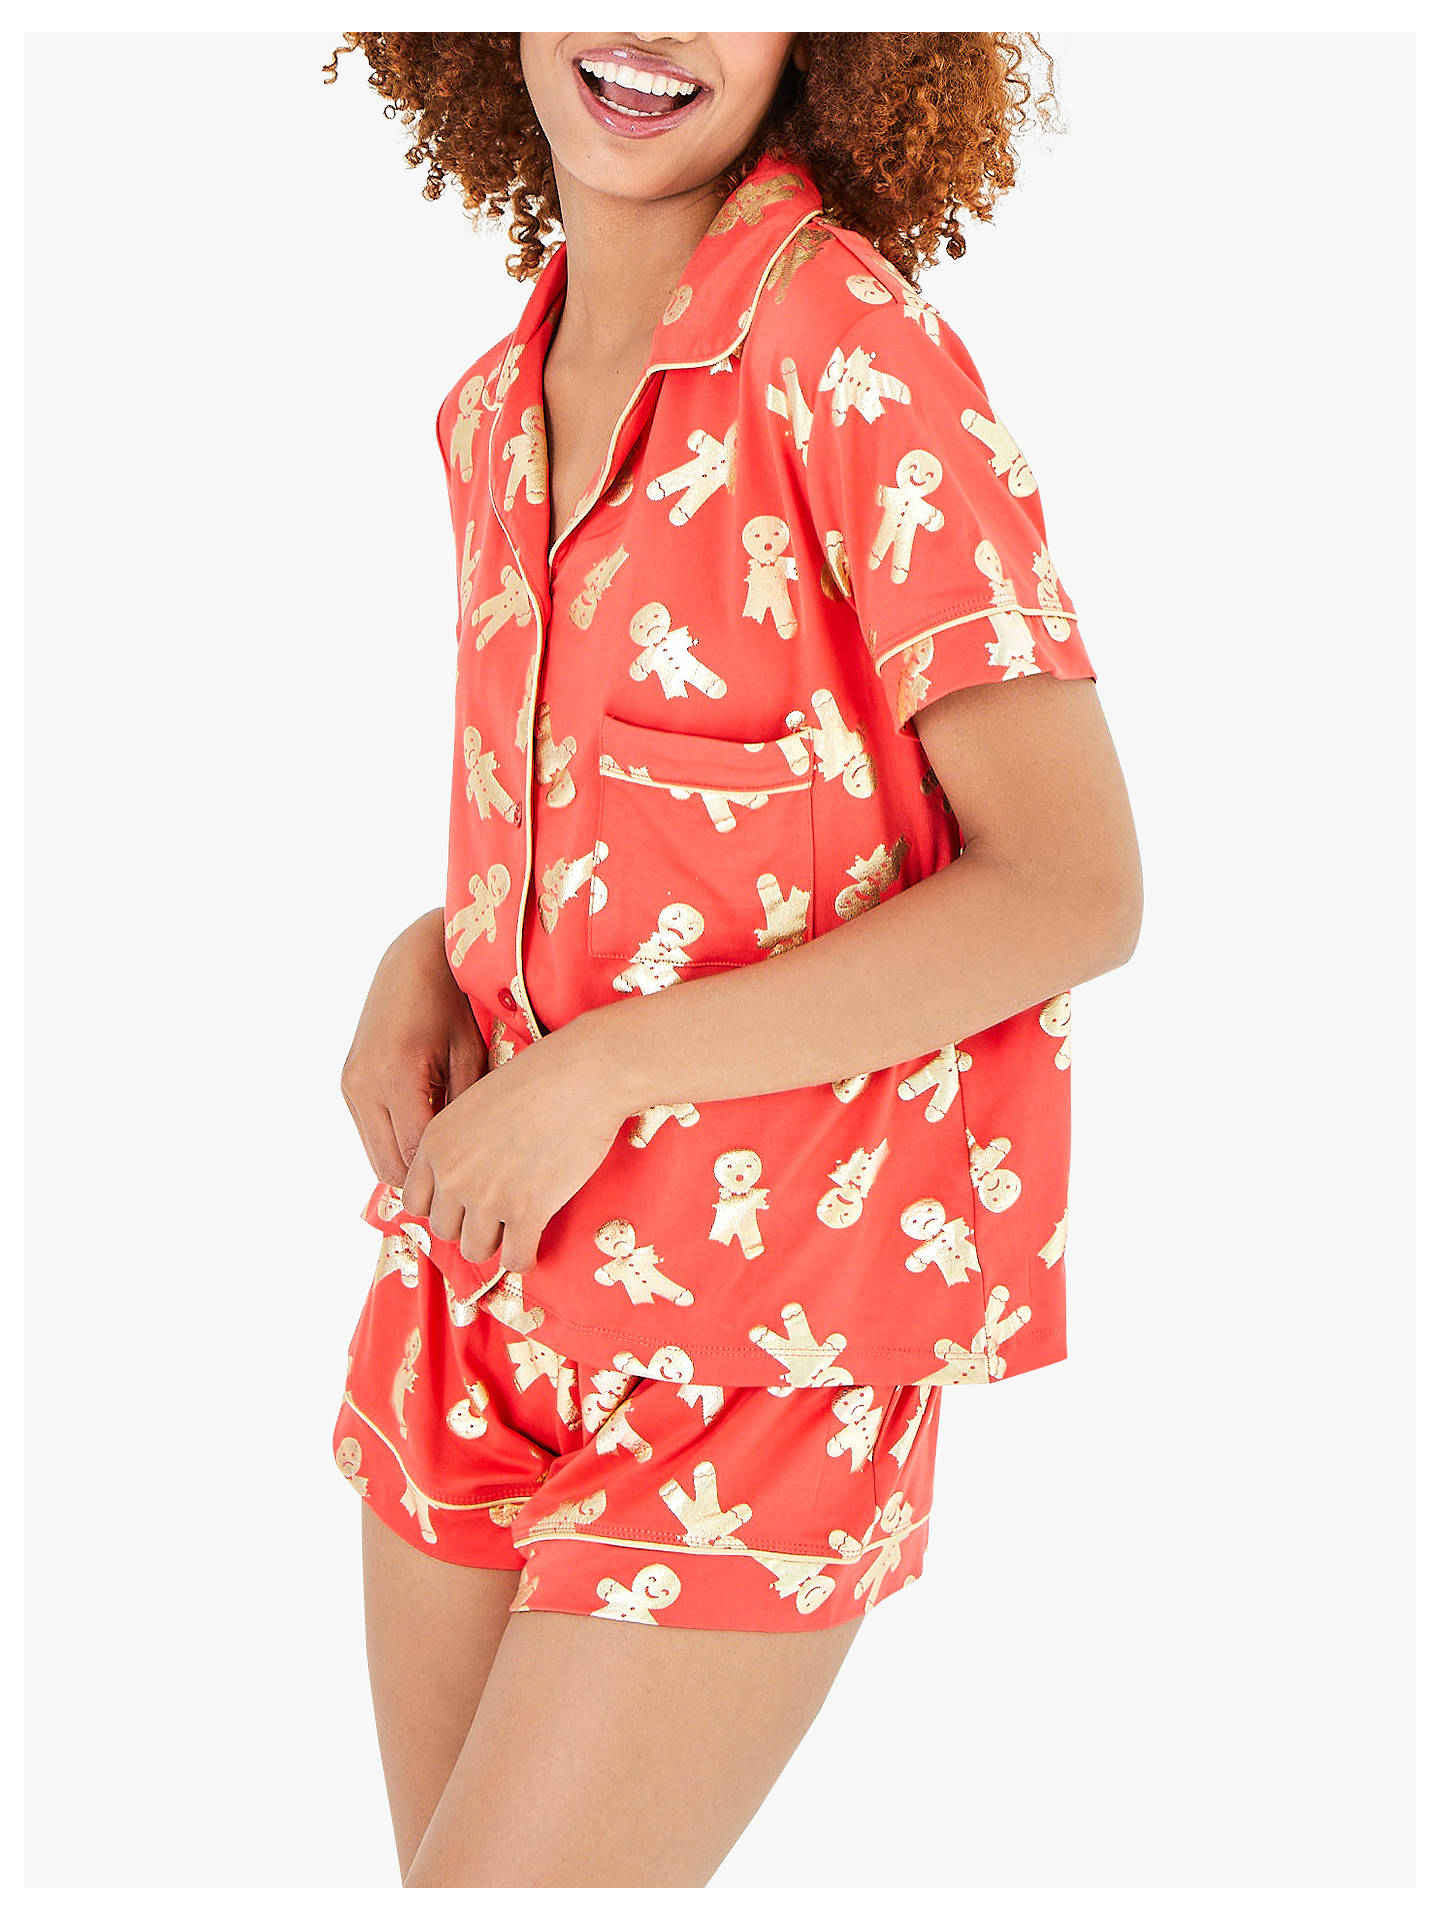 BuyChelsea Peers Gingerbread Shorts Pyjama Set, Red, S Online at johnlewis.com